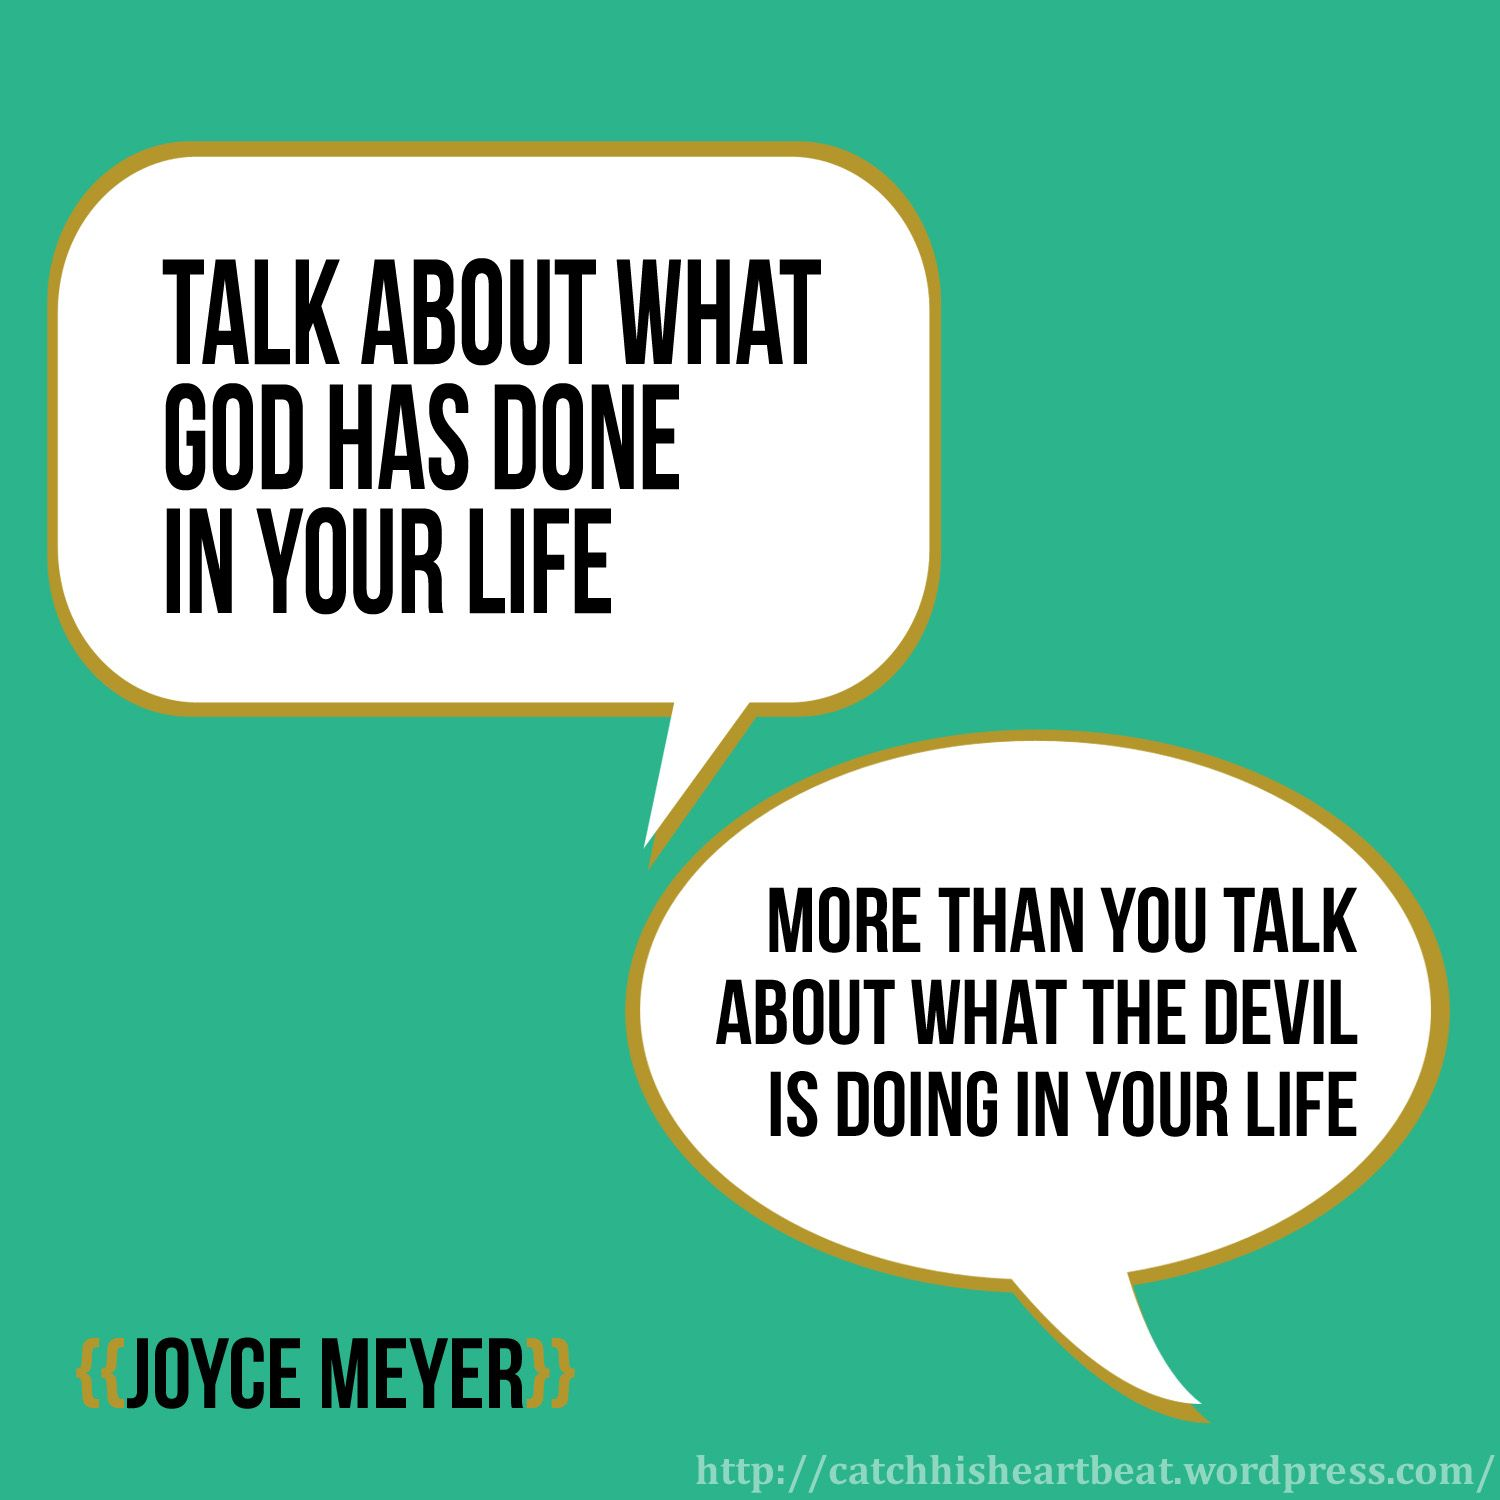 Joyce Meyer Enjoying Everyday Life Quotes Talk About What God Has Done In Your Life More Than You Talk About